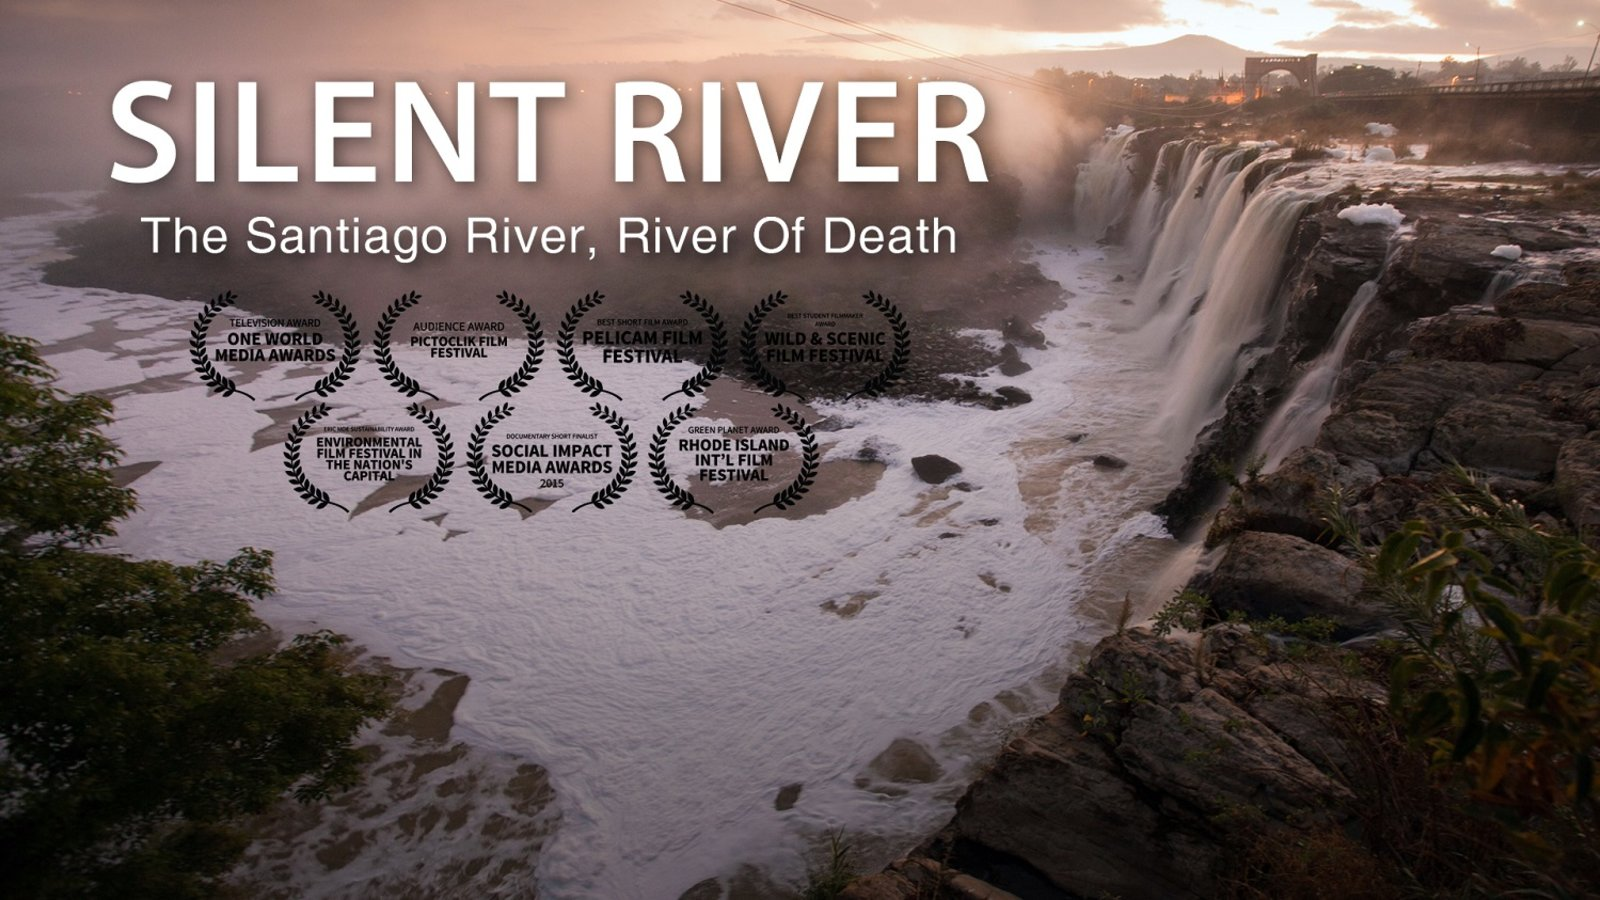 Silent River - Corporate Pollution in Mexico